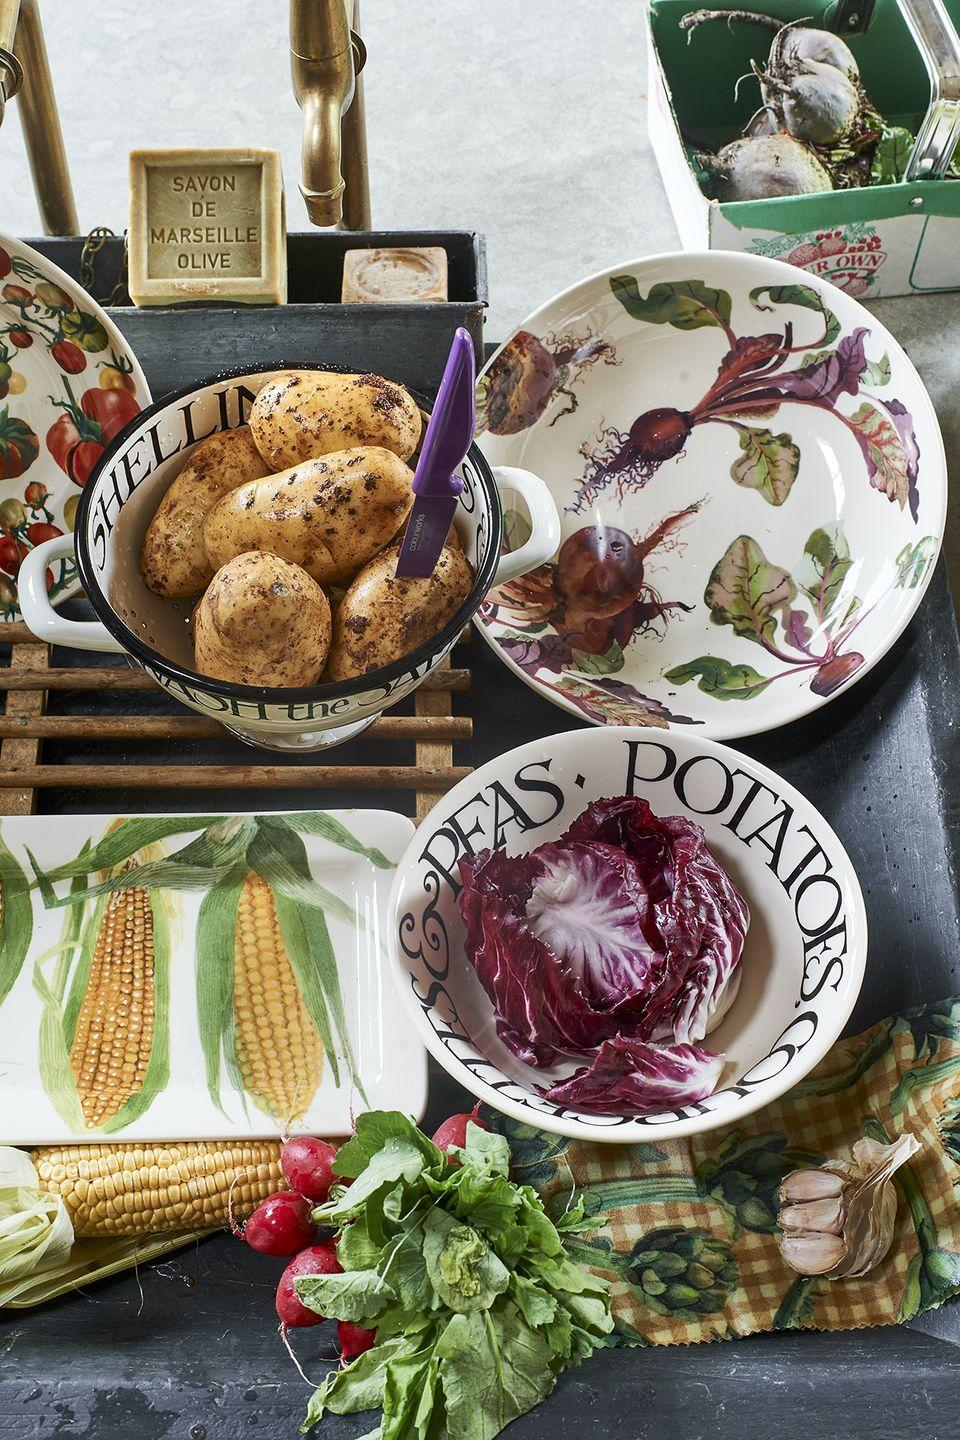 """<p>We're big fans of the new Vegetable Garden collection, which welcomes courgette flowers, beetroots, red onions, tomatoes, figs and watercress all beautifully illustrated on plates, platters, bowls and jugs.</p><p><a class=""""link rapid-noclick-resp"""" href=""""https://go.redirectingat.com?id=127X1599956&url=https%3A%2F%2Fwww.emmabridgewater.co.uk%2Fcollections%2Fvegetable-garden&sref=https%3A%2F%2Fwww.housebeautiful.com%2Fuk%2Flifestyle%2Fshopping%2Fg37527696%2Femma-bridgewater-autumn-range%2F"""" rel=""""nofollow noopener"""" target=""""_blank"""" data-ylk=""""slk:SHOP THE RANGE"""">SHOP THE RANGE</a></p>"""